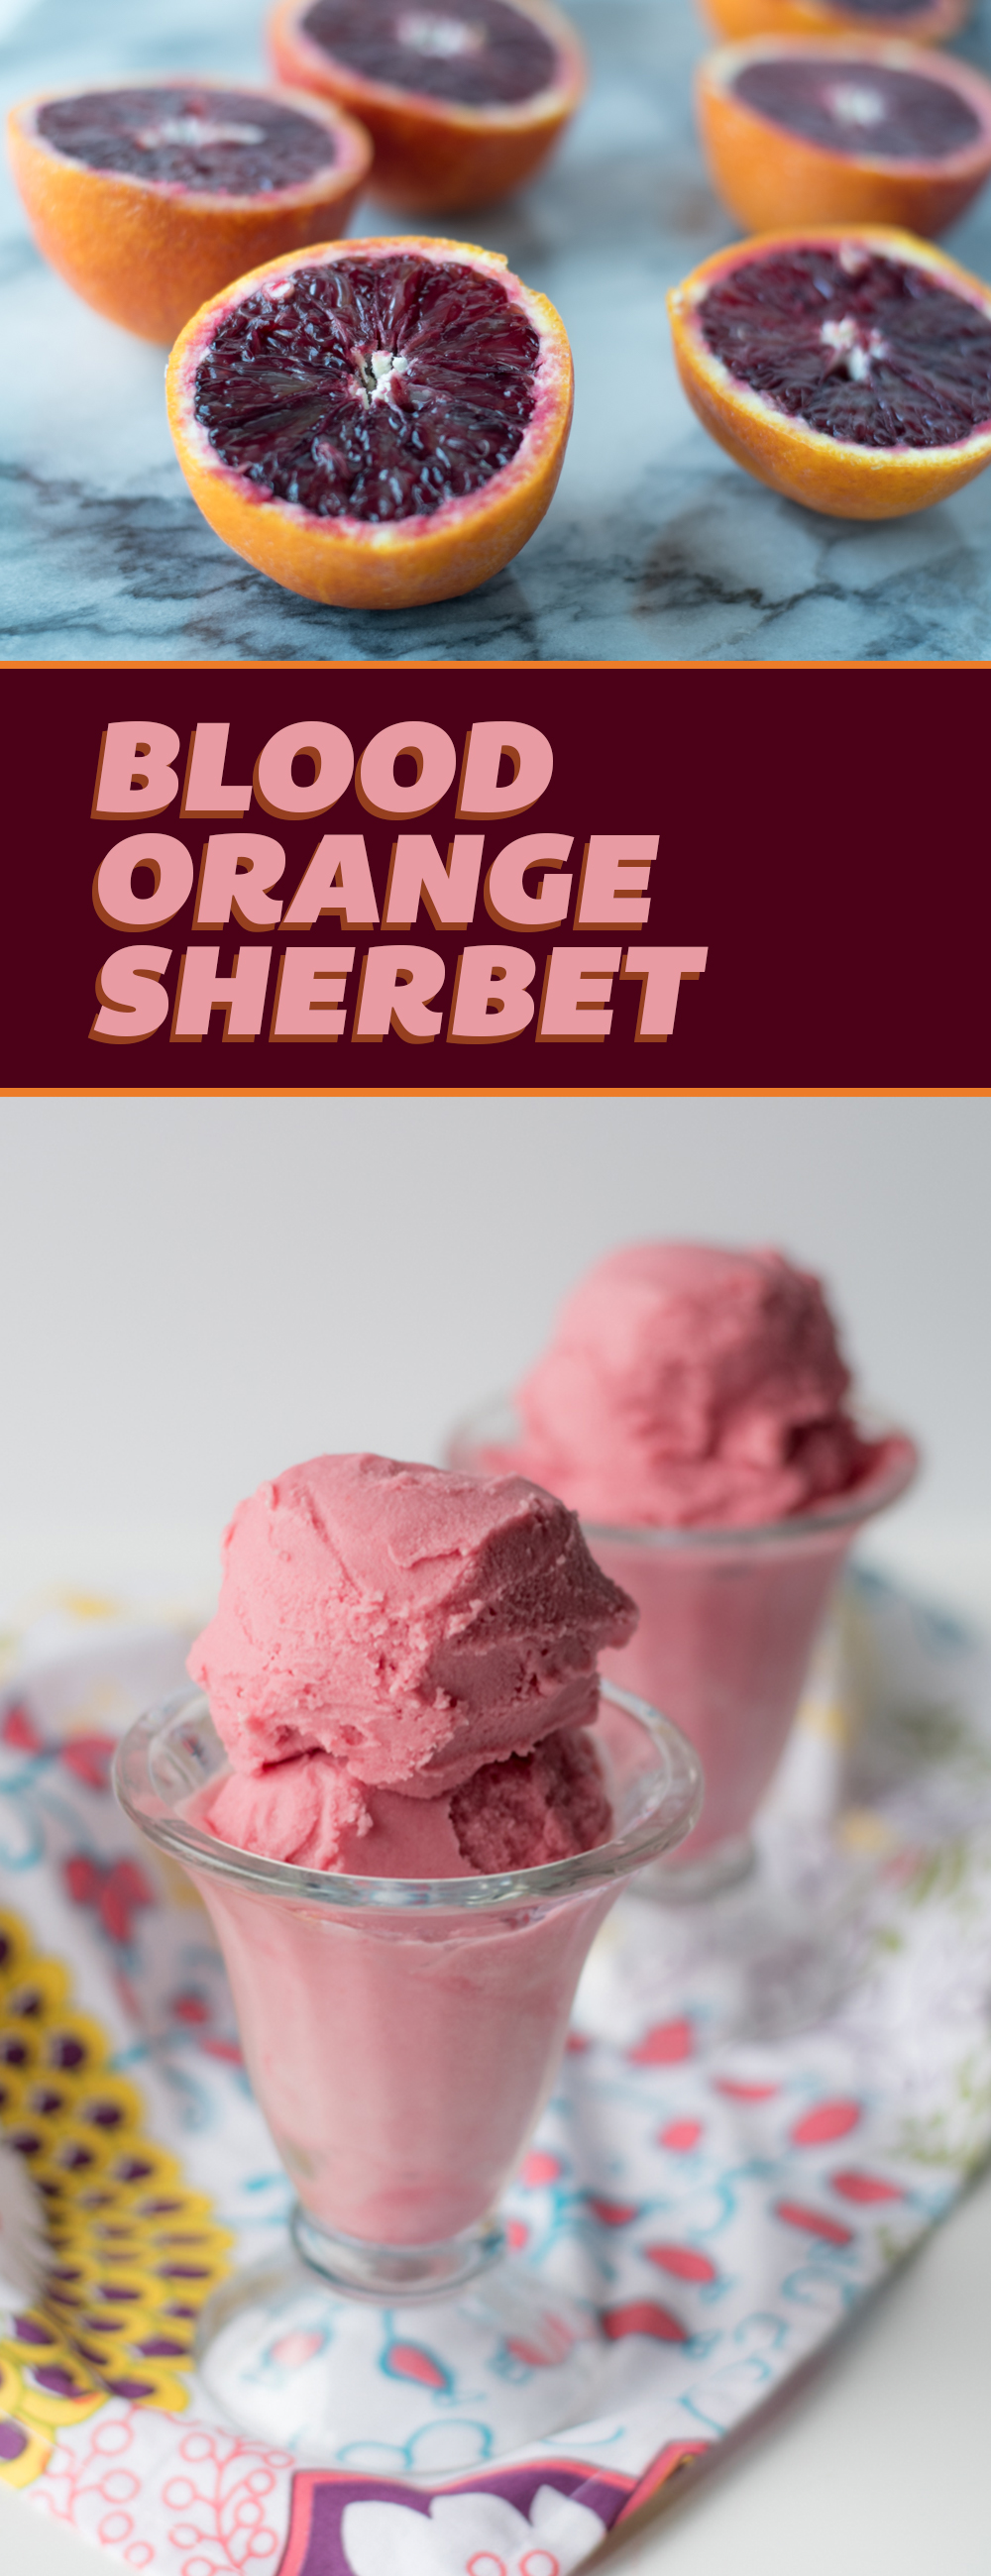 The creamy Blood Orange Sherbet would make for a refreshing treat for Valentine's Day! It's creamy, smooth and the perfect balance for sweet and tart. Naturally Vegan + Glutenfree!